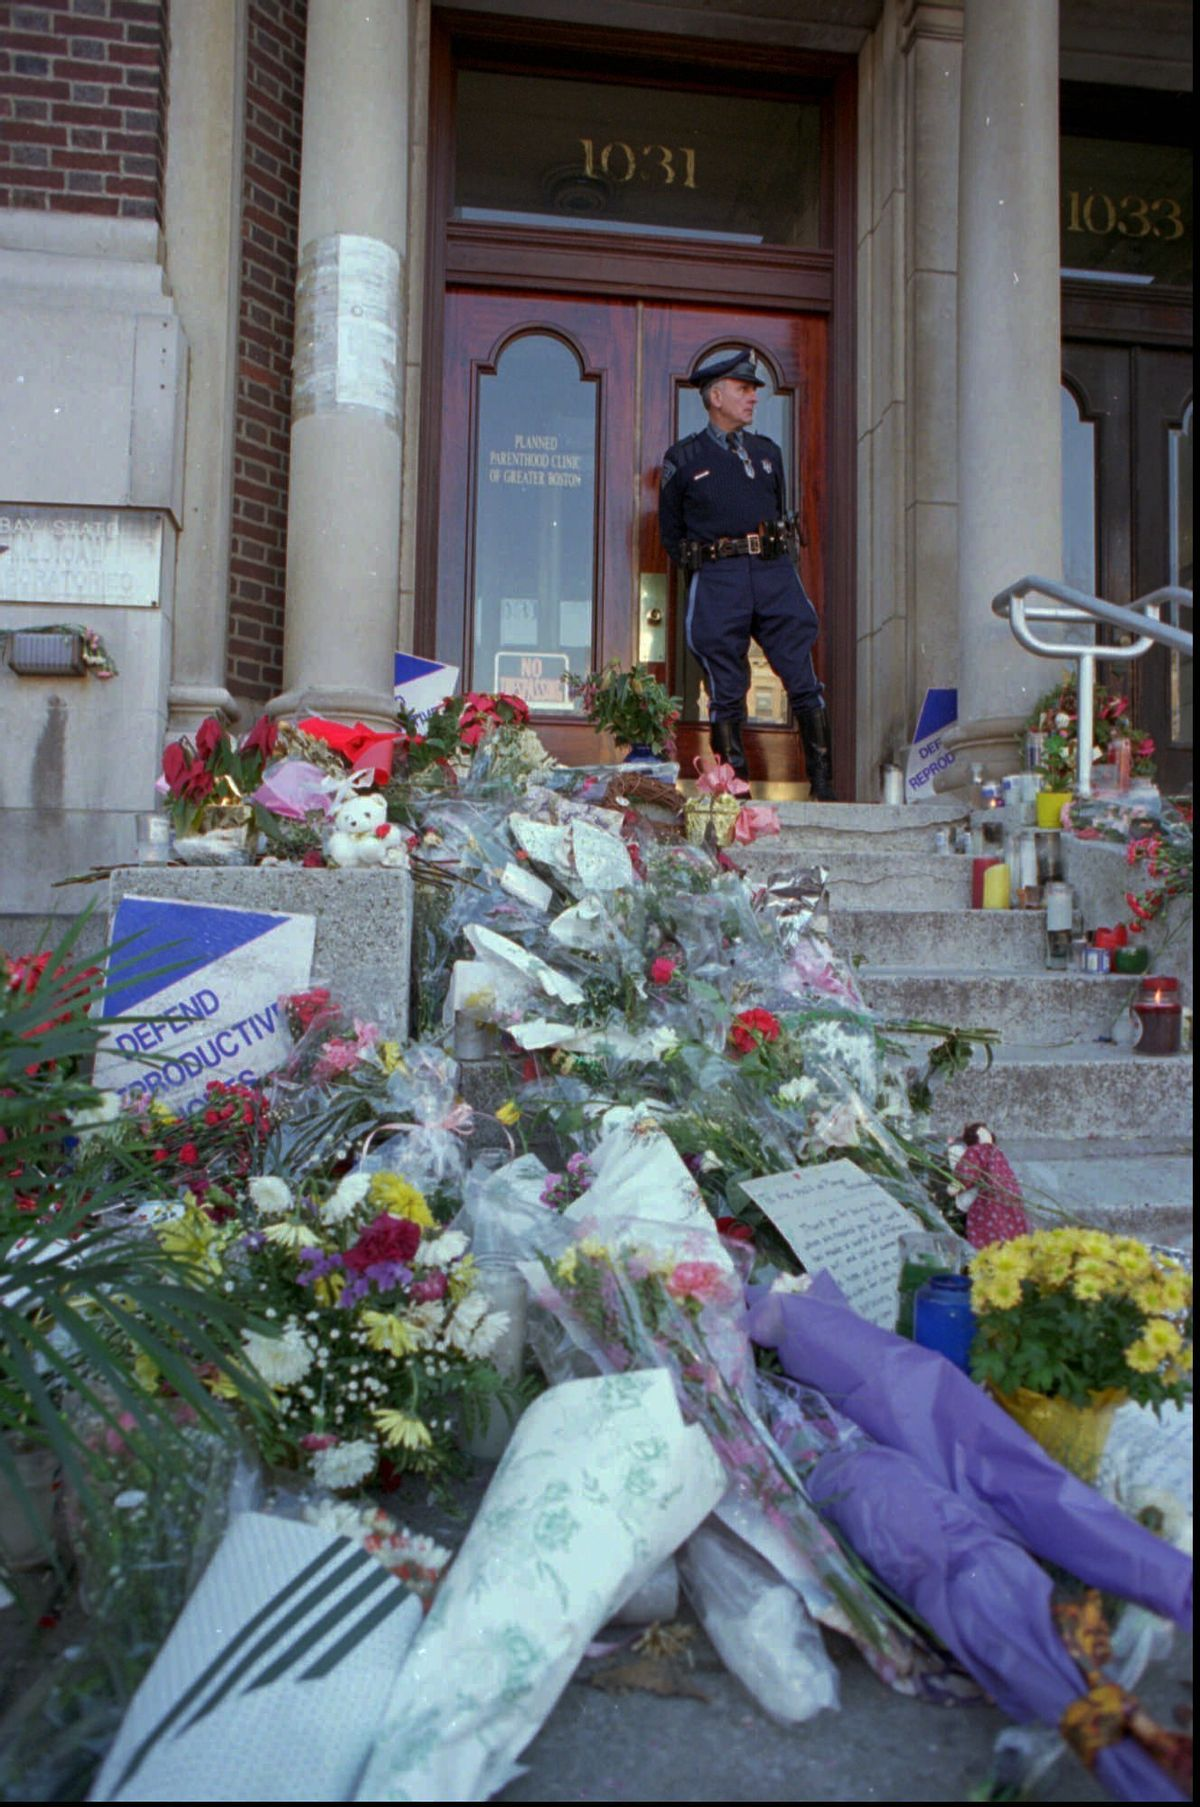 FILE - In this Wednesday, Jan. 4, 1995 file photo, Masssachusetts State Trooper Daniel Dhionis stands guard at the Planned Parenthood Clinic of Greater Boston in Brookline, Mass,, where flowers and letters were left after two women were killed, and five people injured in shootings at Planned Parenthood and another clinic. Planned Parenthood clinics have been repeated targets of bombings, arson and protests. (AP Photo/Julia Malakie) (AP)